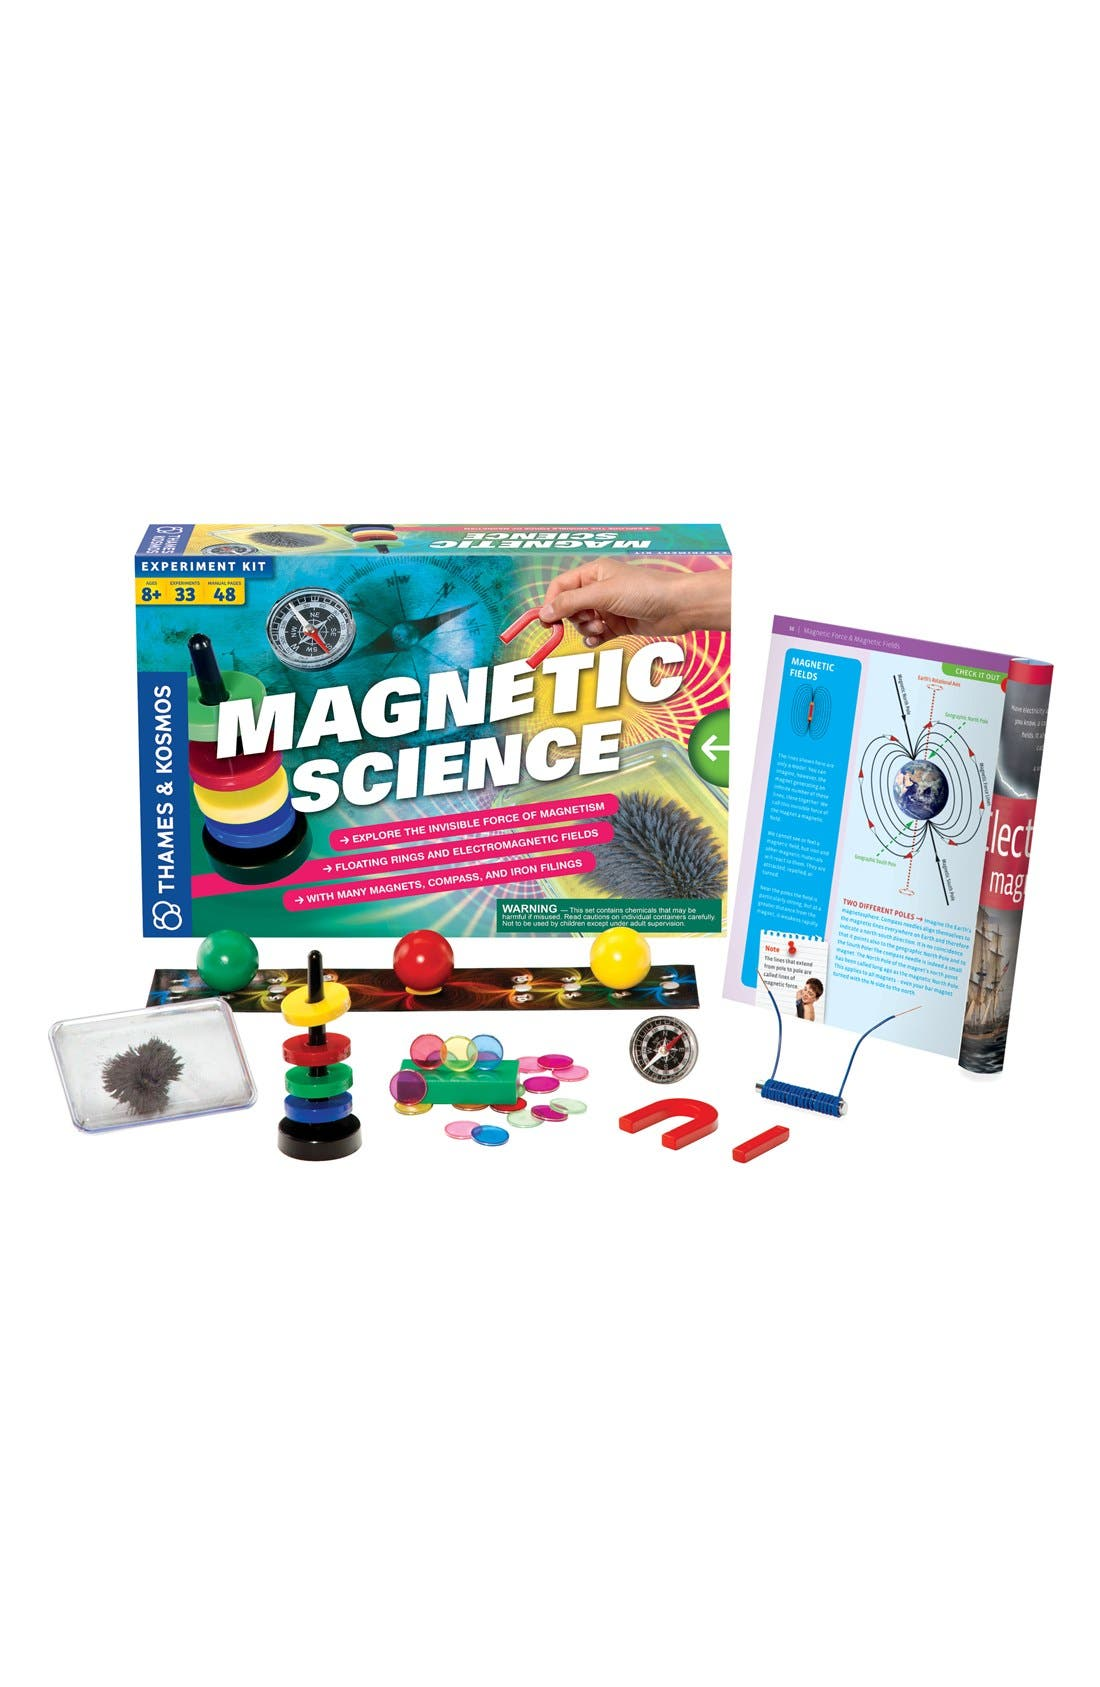 'Magnetic Science' Experiment Kit,                         Main,                         color, 000